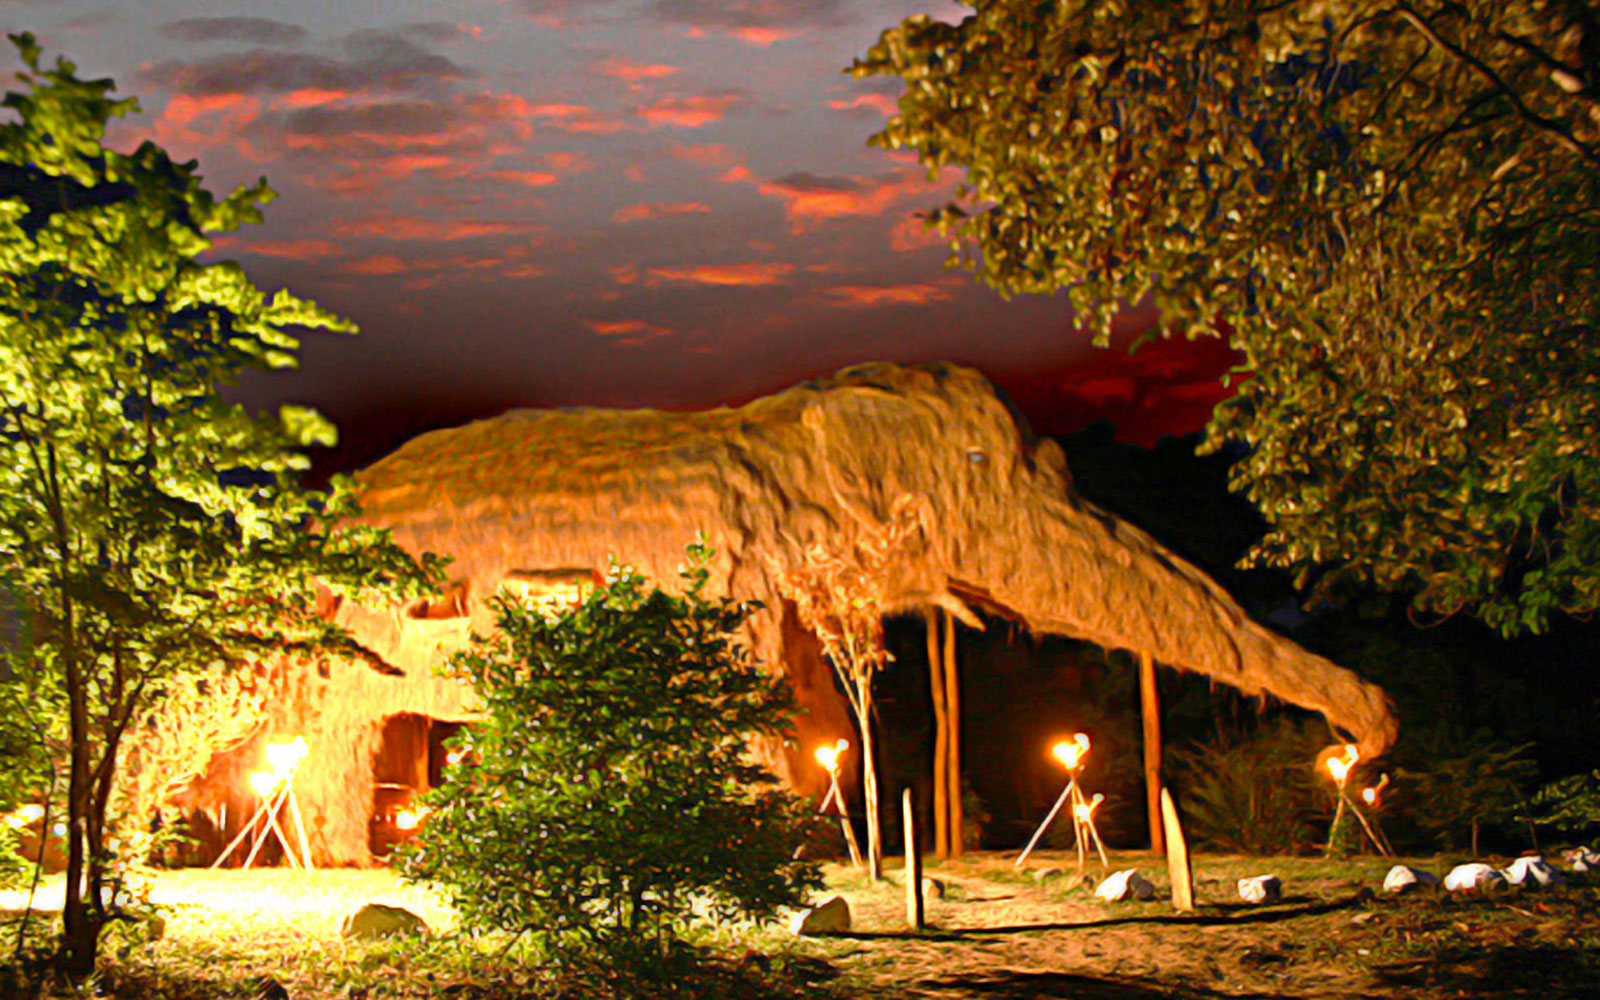 world's most unusual hotels: Kumbuk